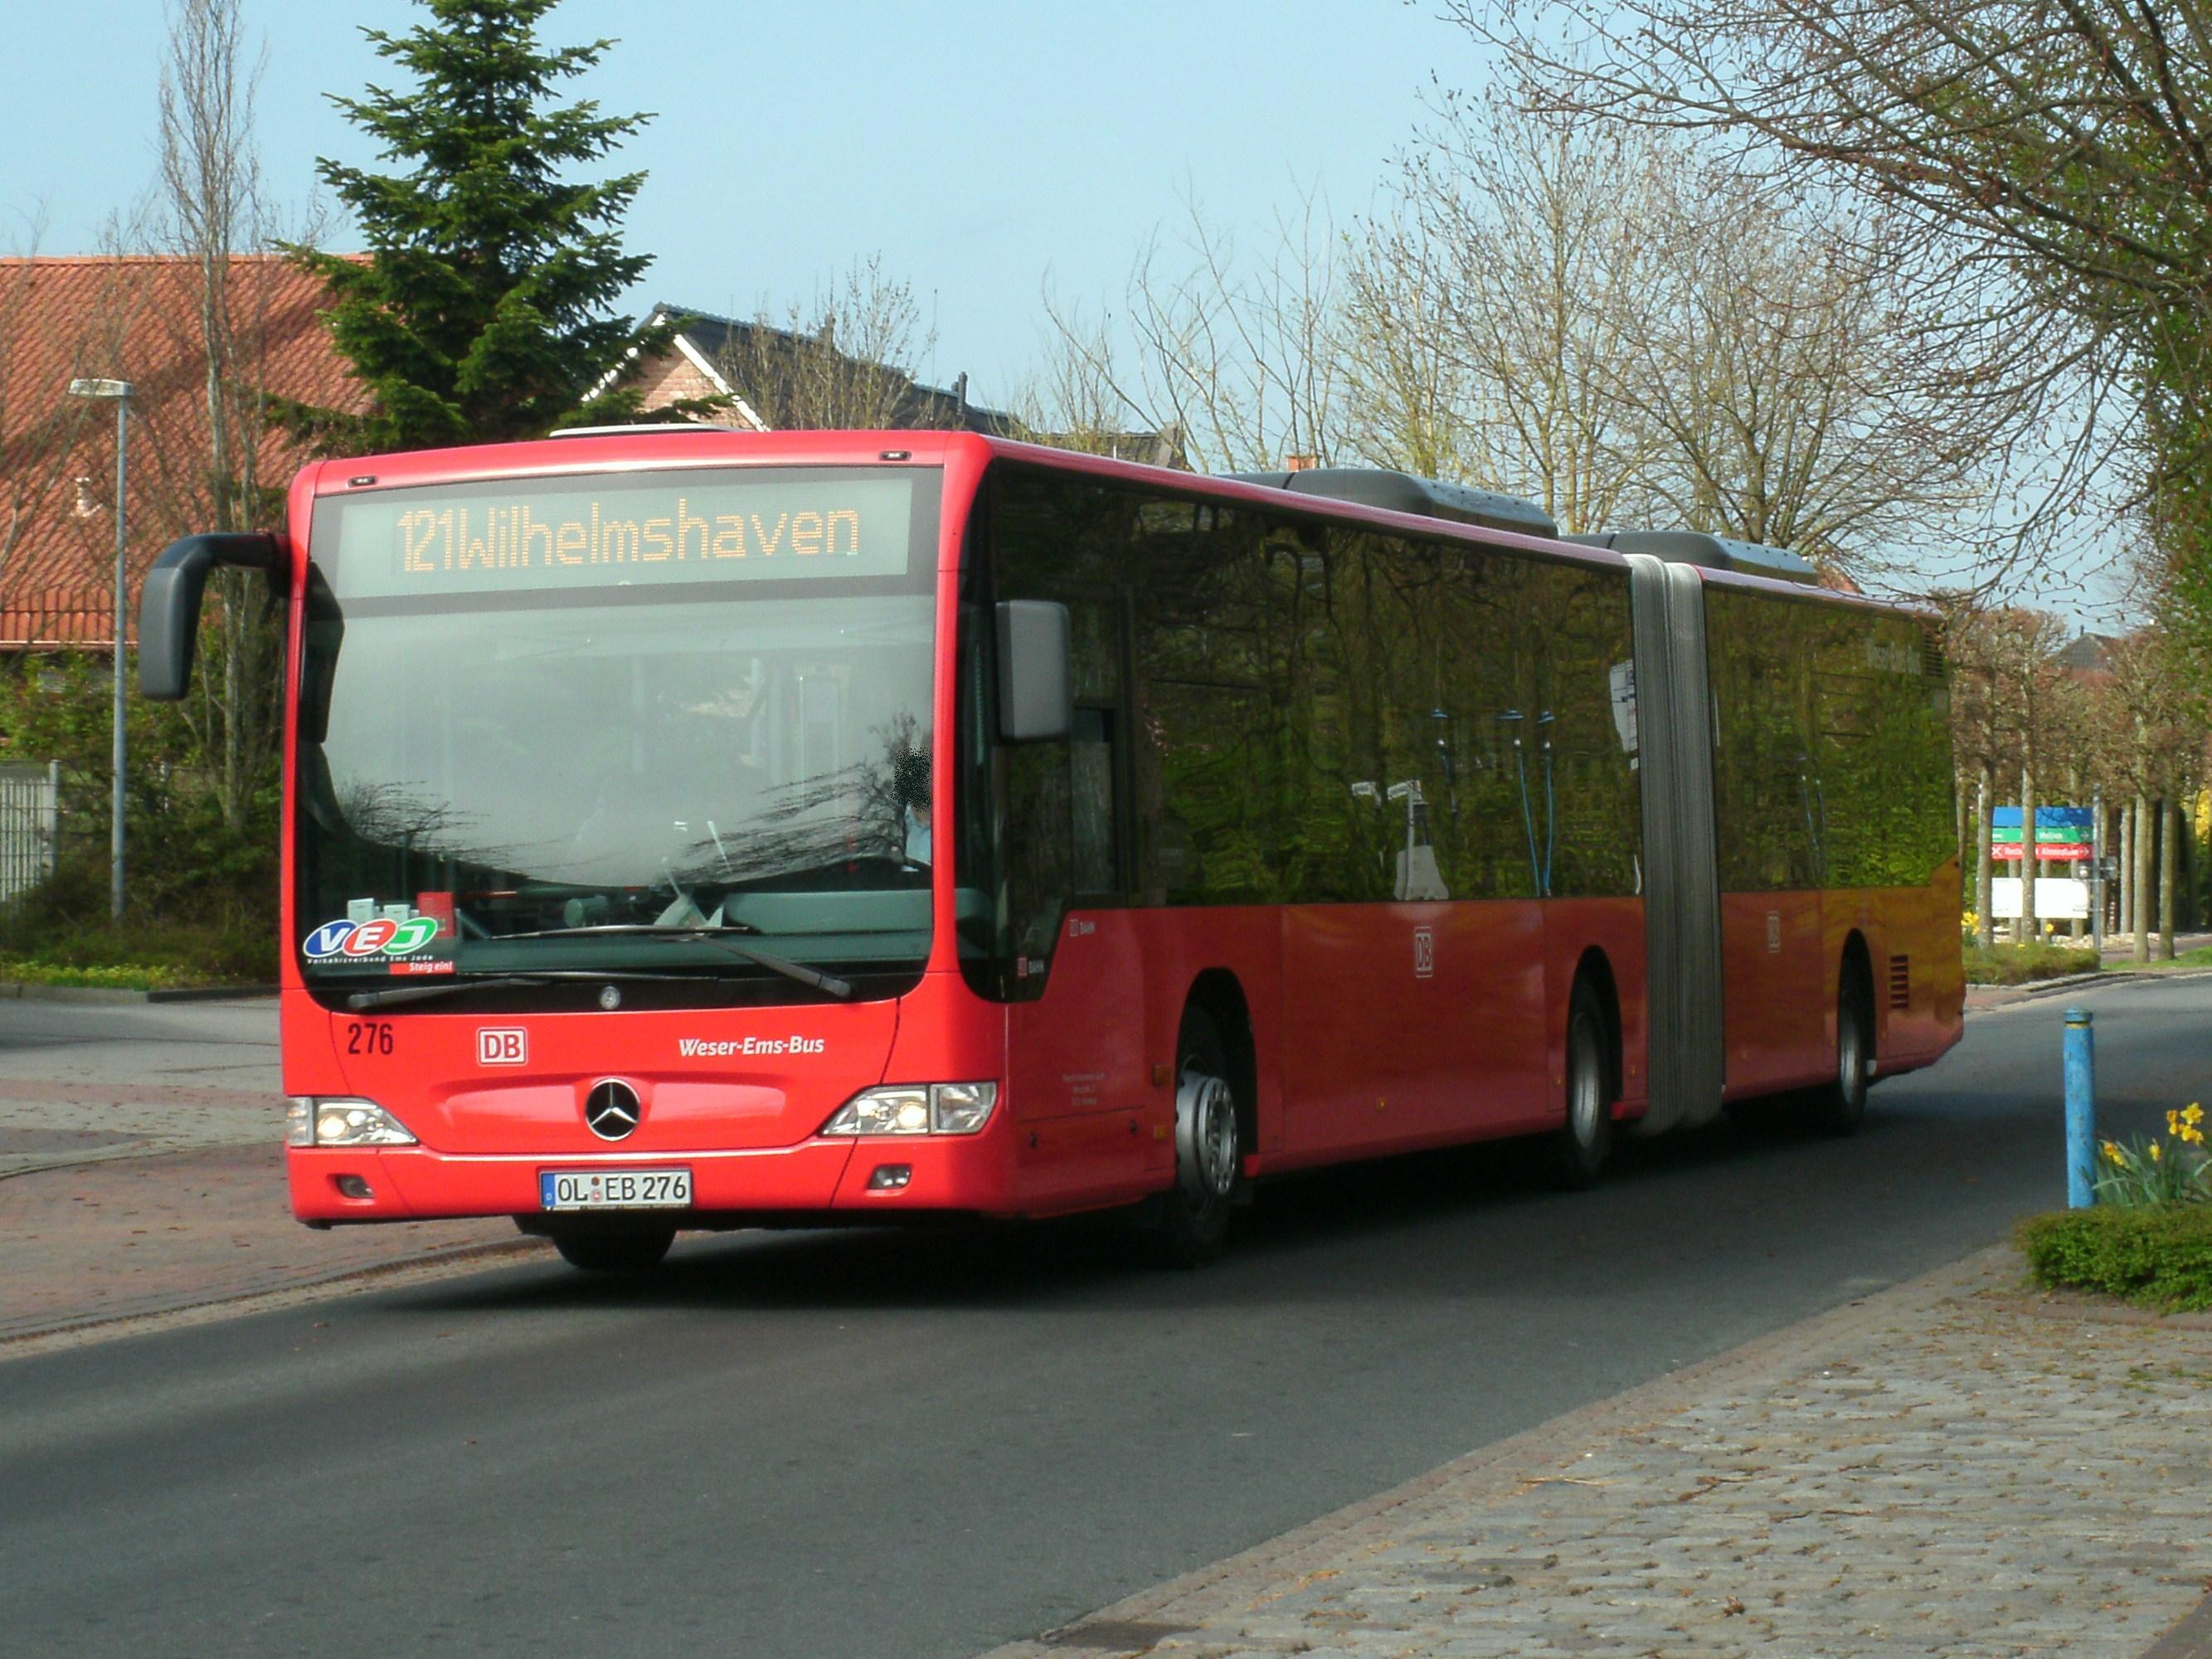 weser ems bus bahnbus wiki fandom powered by wikia. Black Bedroom Furniture Sets. Home Design Ideas